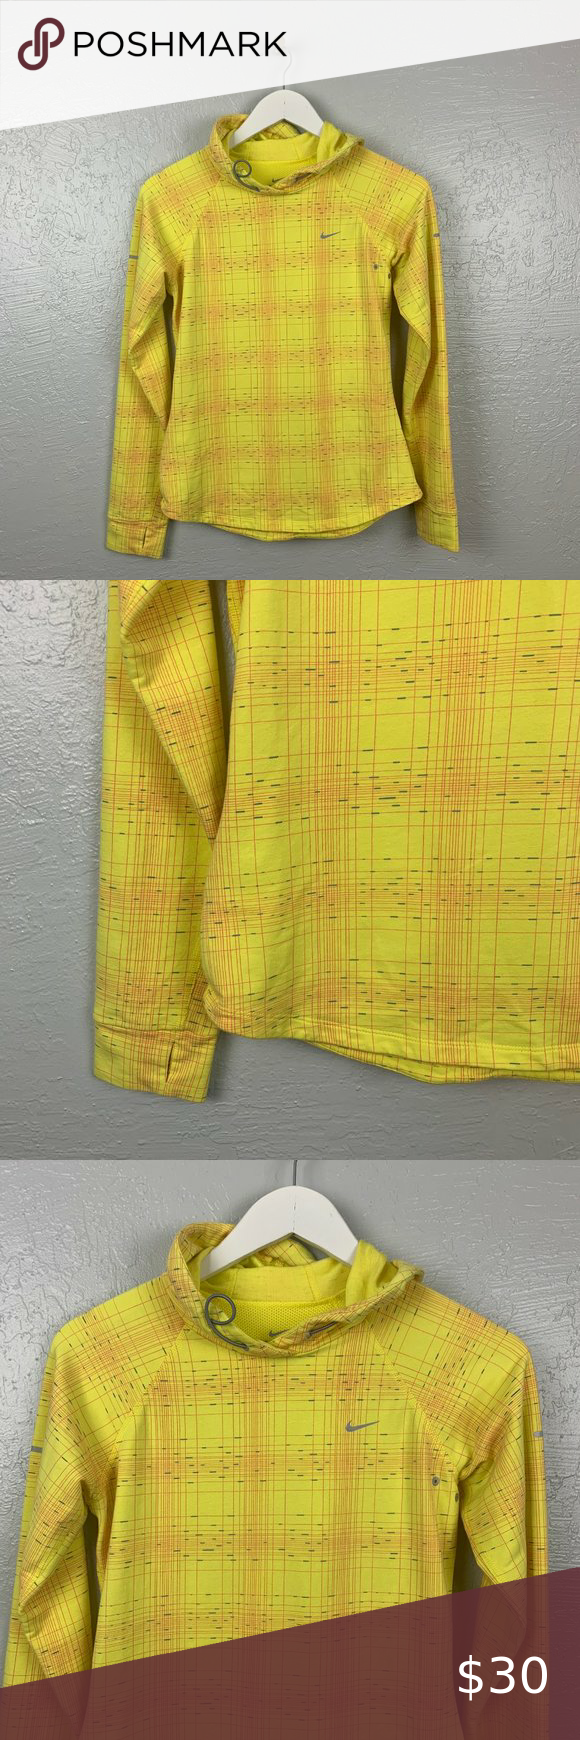 Nike Size S Soft Hang Hoodie Yellow Red Blue Plaid Yellow Hoodie Red Blue Yellow Red And Blue [ 1740 x 580 Pixel ]